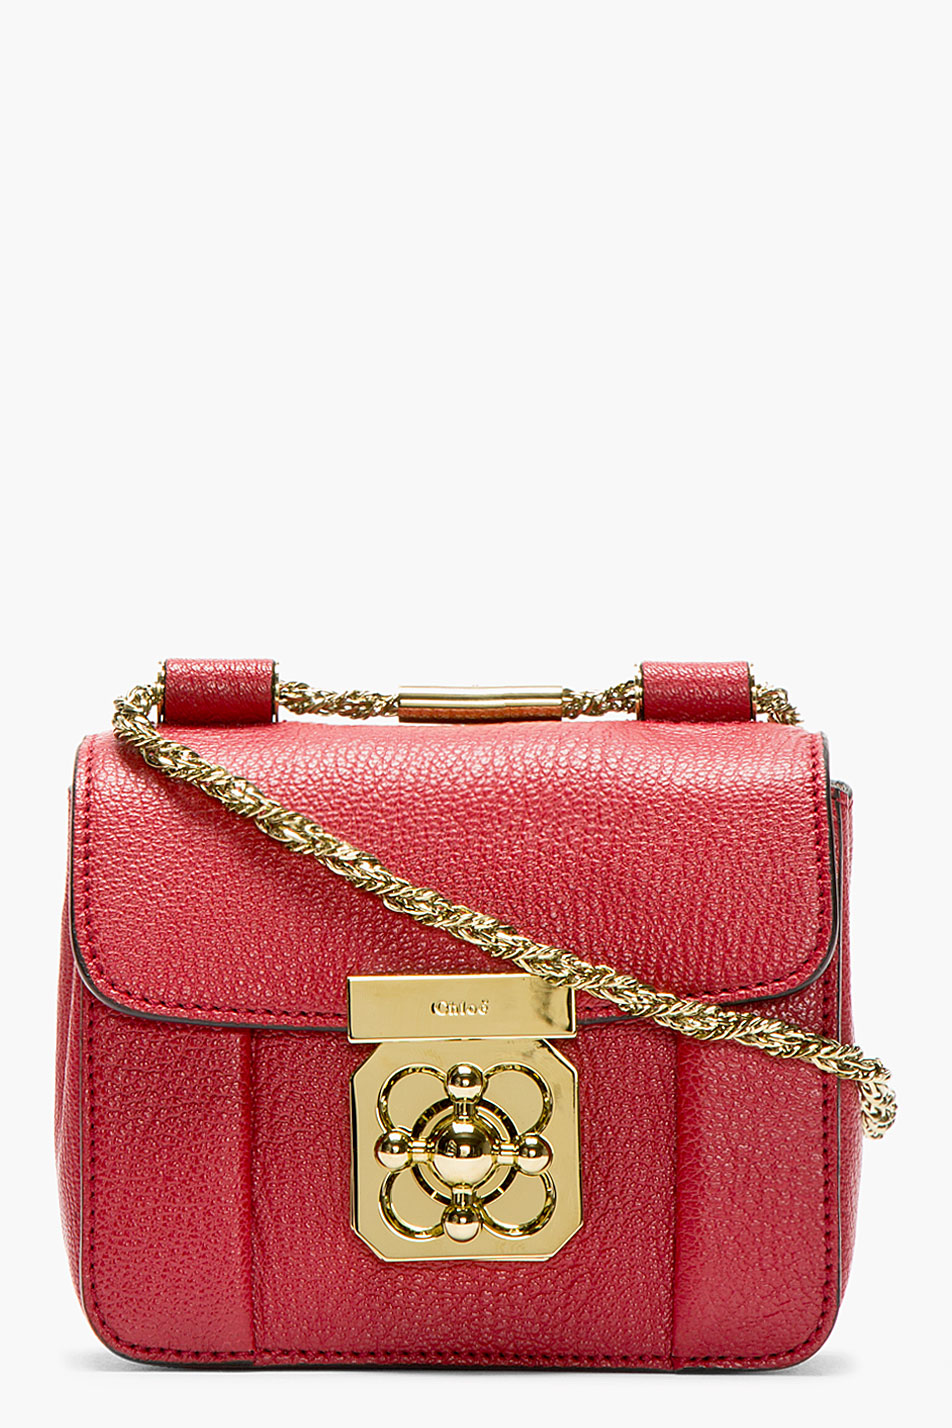 Chlo¨¦ Red Grained Leather Mini Elsie Bag in Red | Lyst